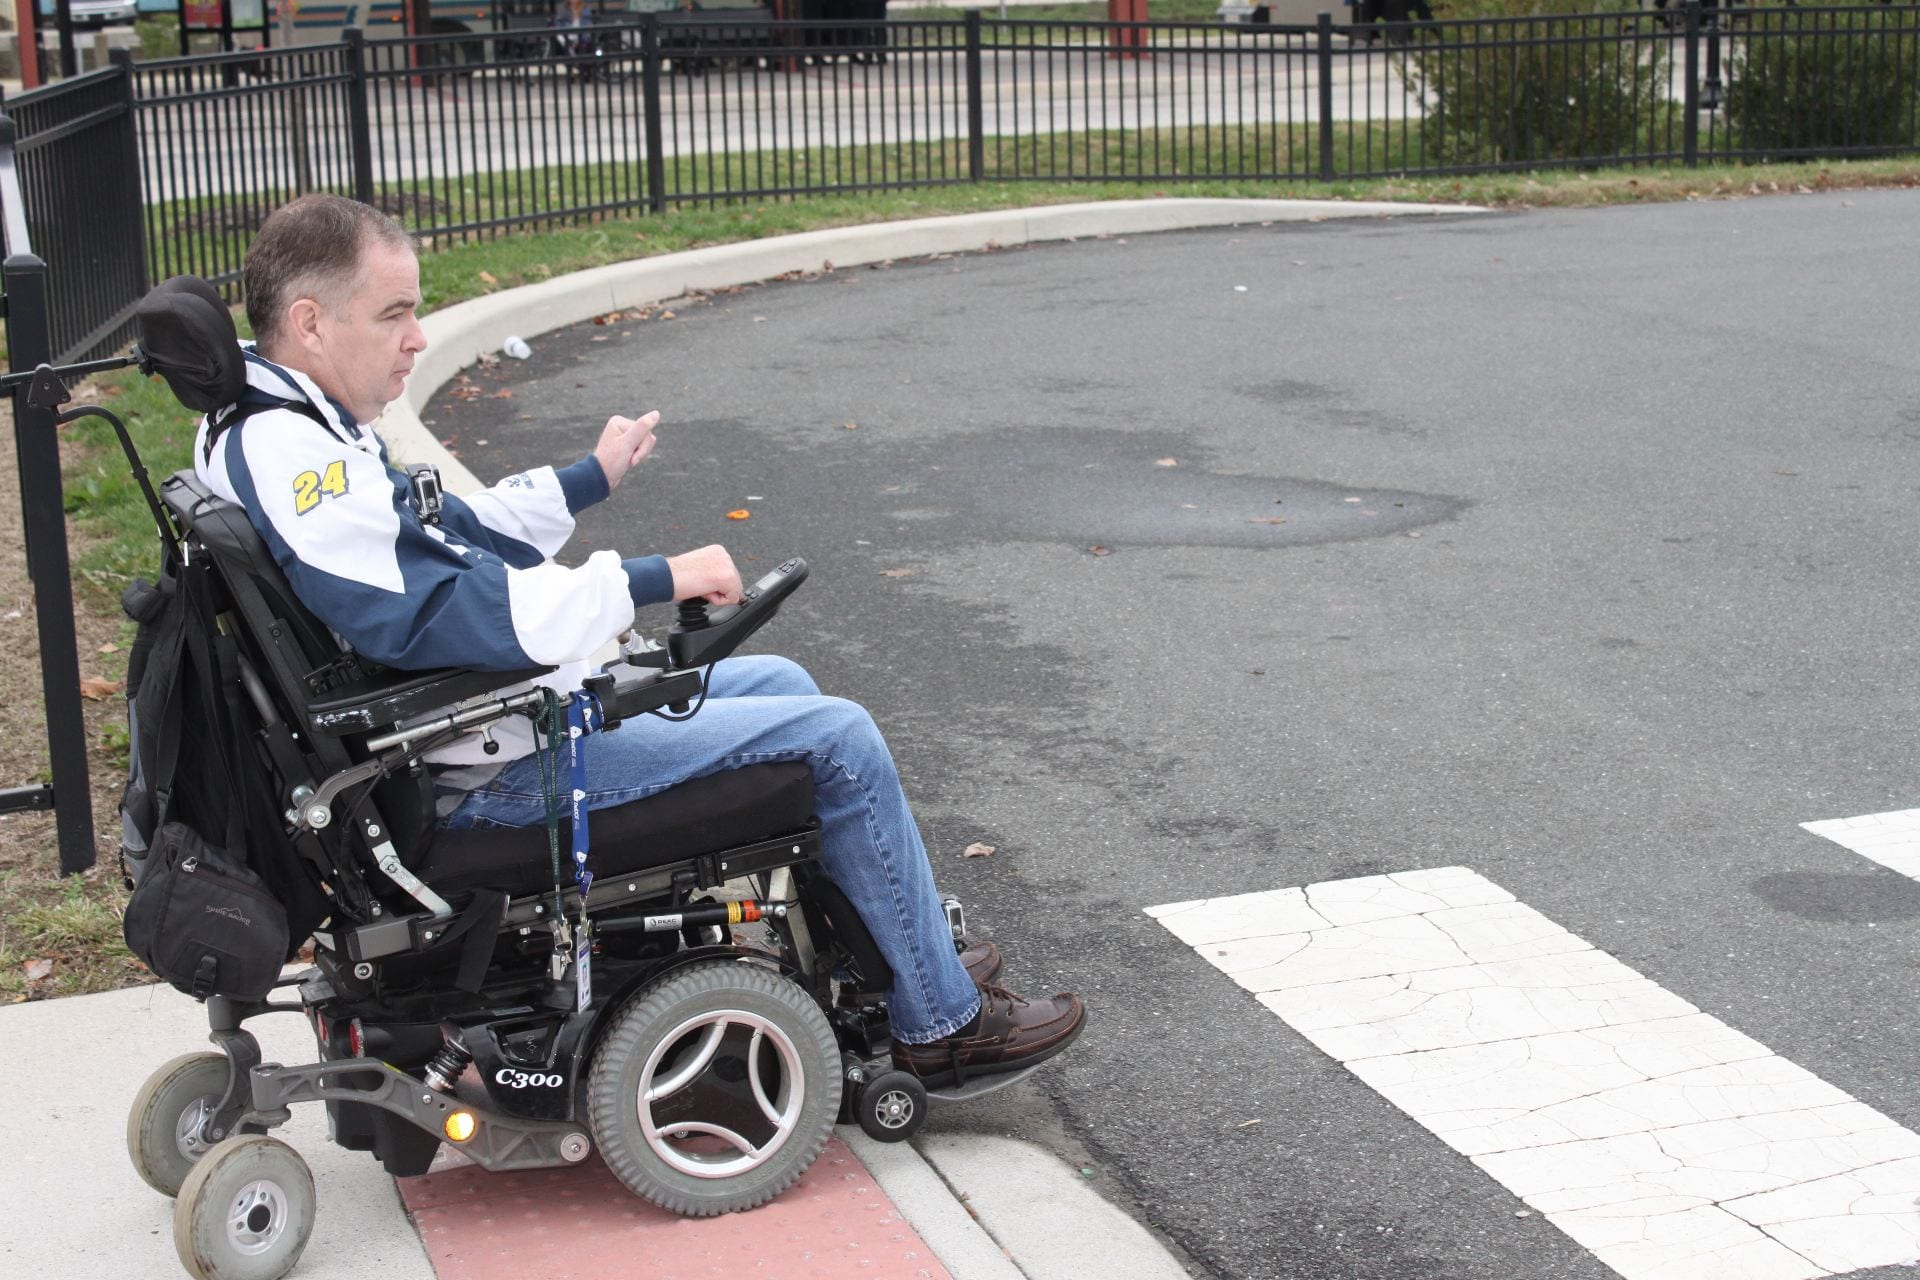 An image of a man using a wheelchair to cross the street, demonstrating the importance of ADA accessibility.